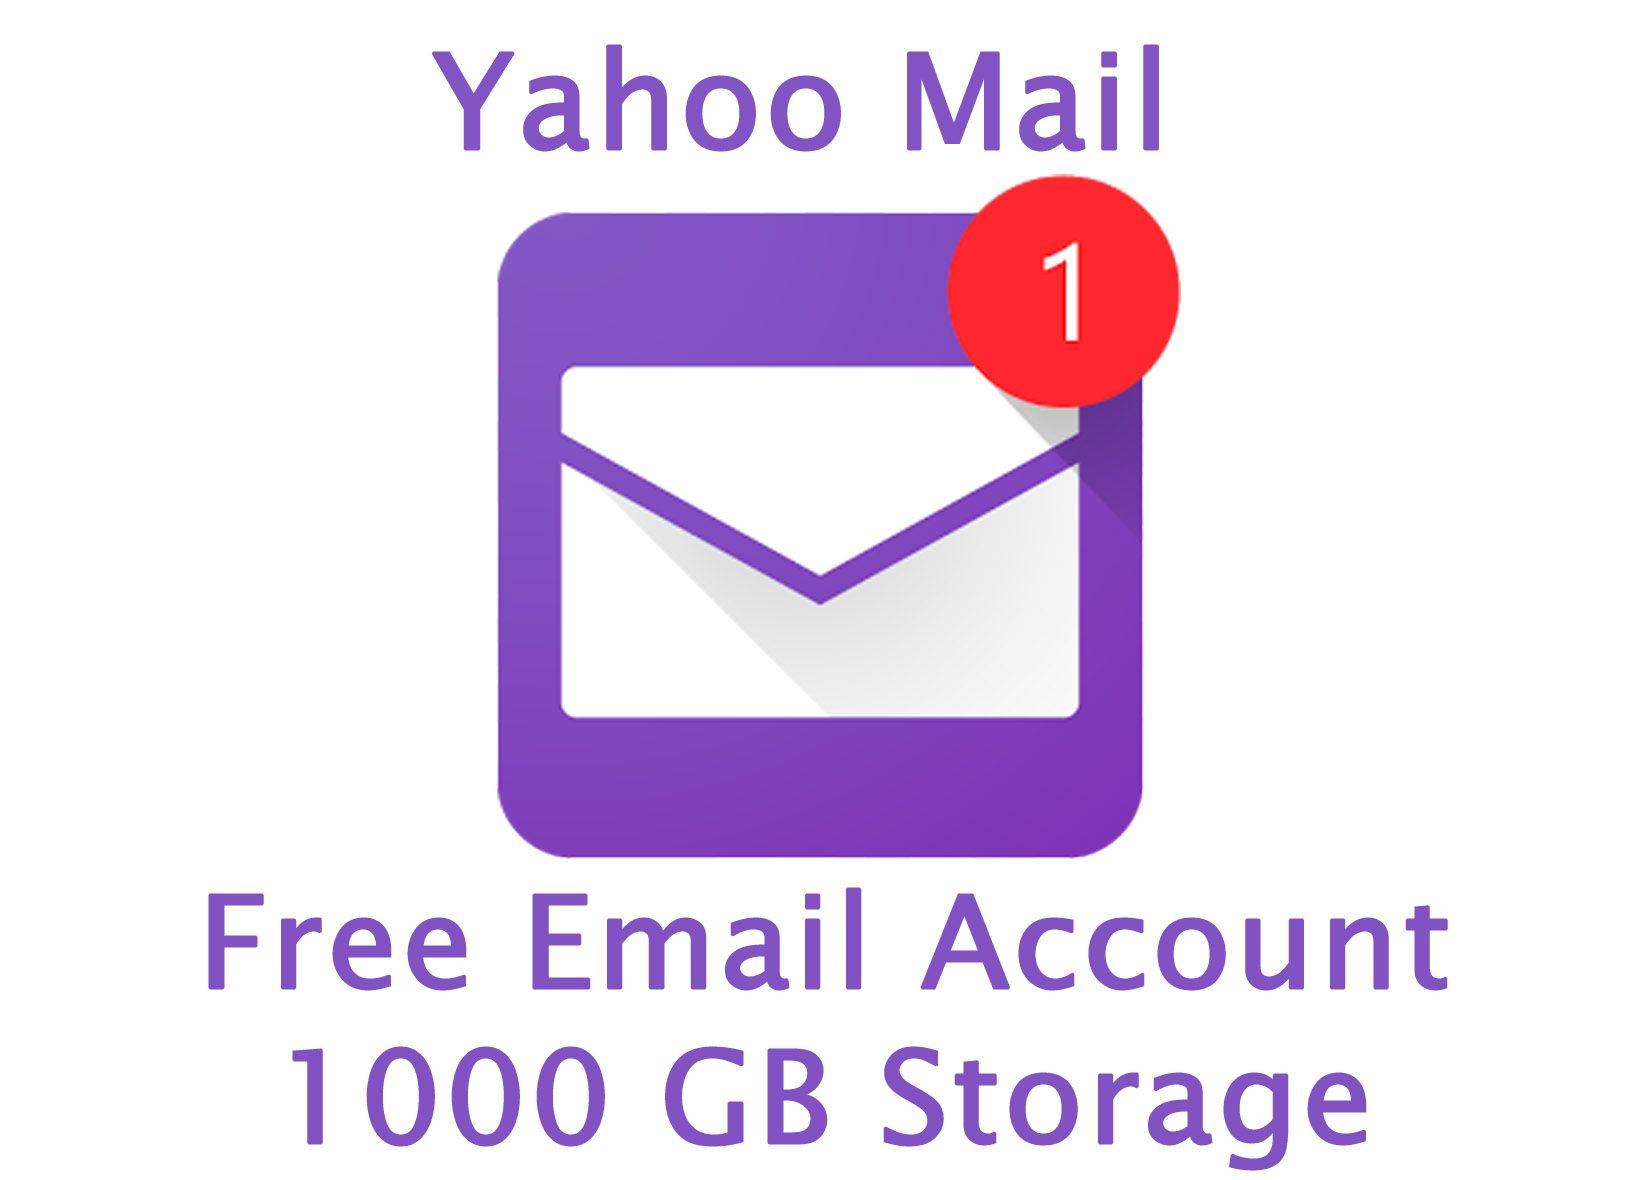 Yahoo Mail Accounts bouncing your mails